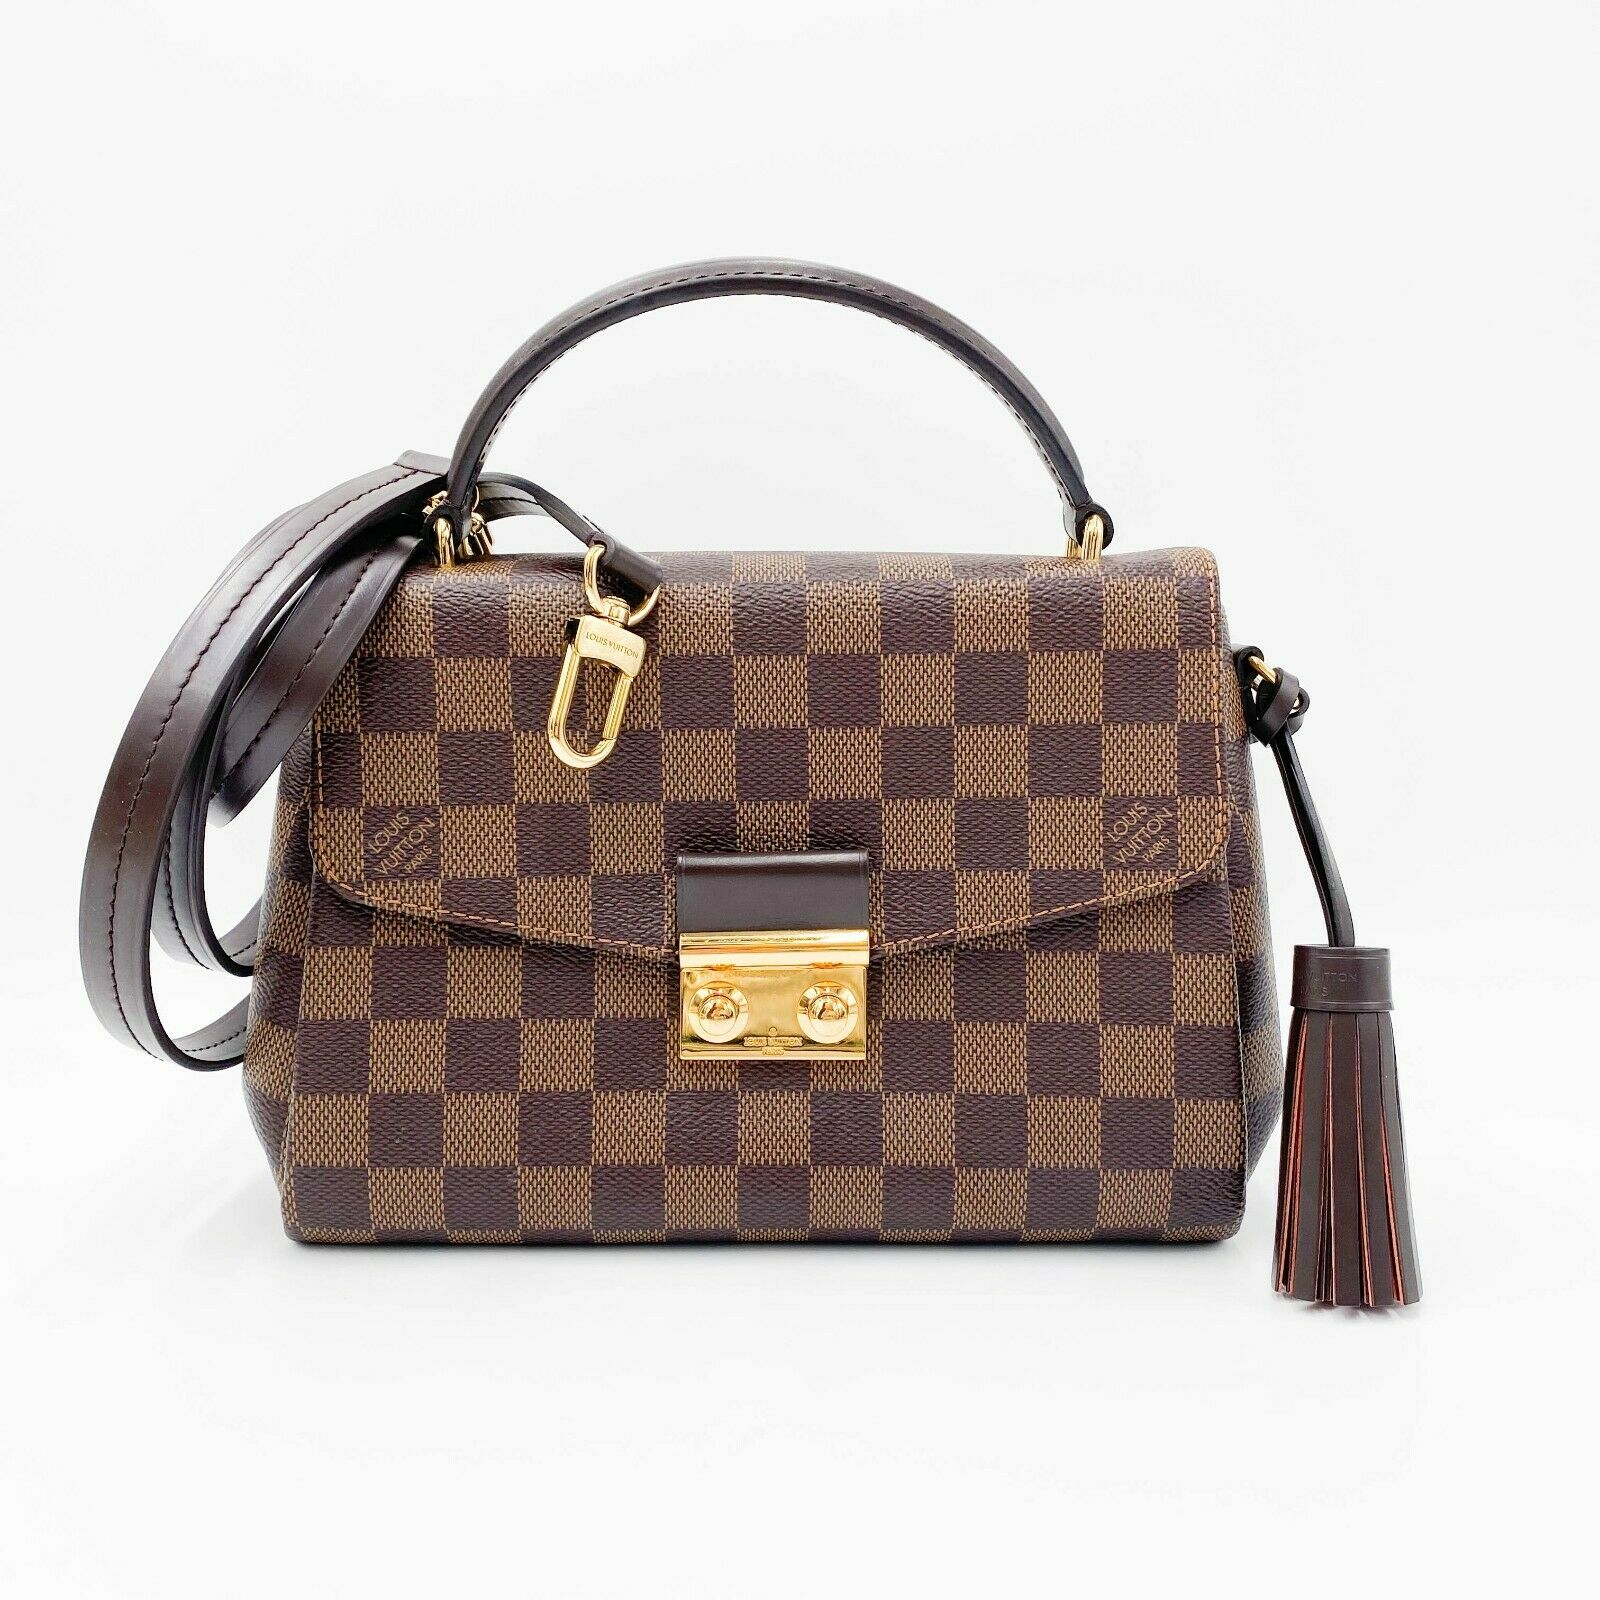 Louis Vuitton Croisette Brown Damier Ébène Canvas Shoulder Bag $1890 Crossbody